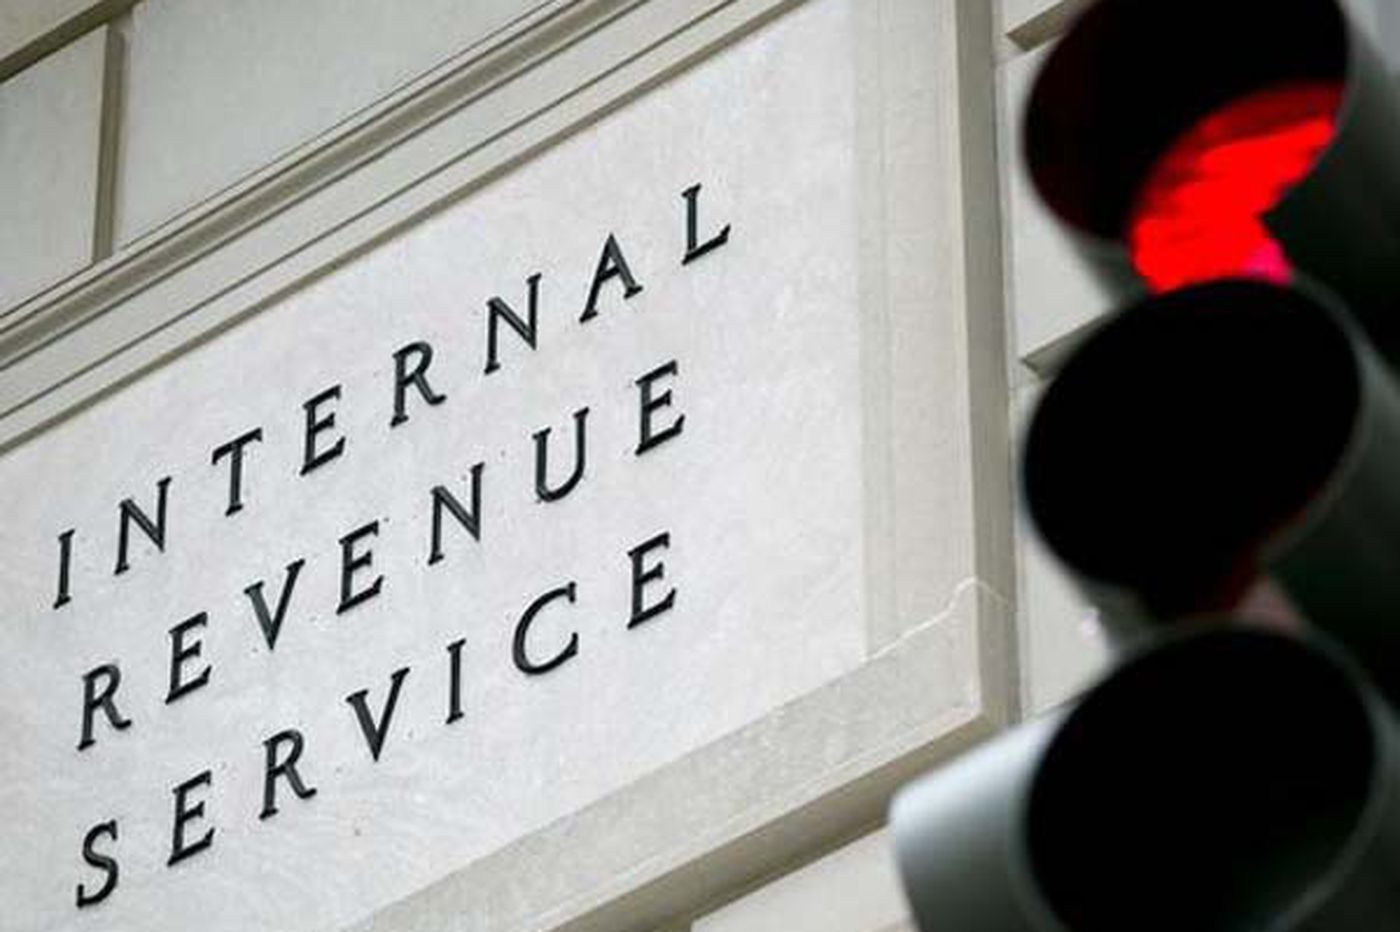 Monday Money Tip: Getting calls from the IRS? It's a scam